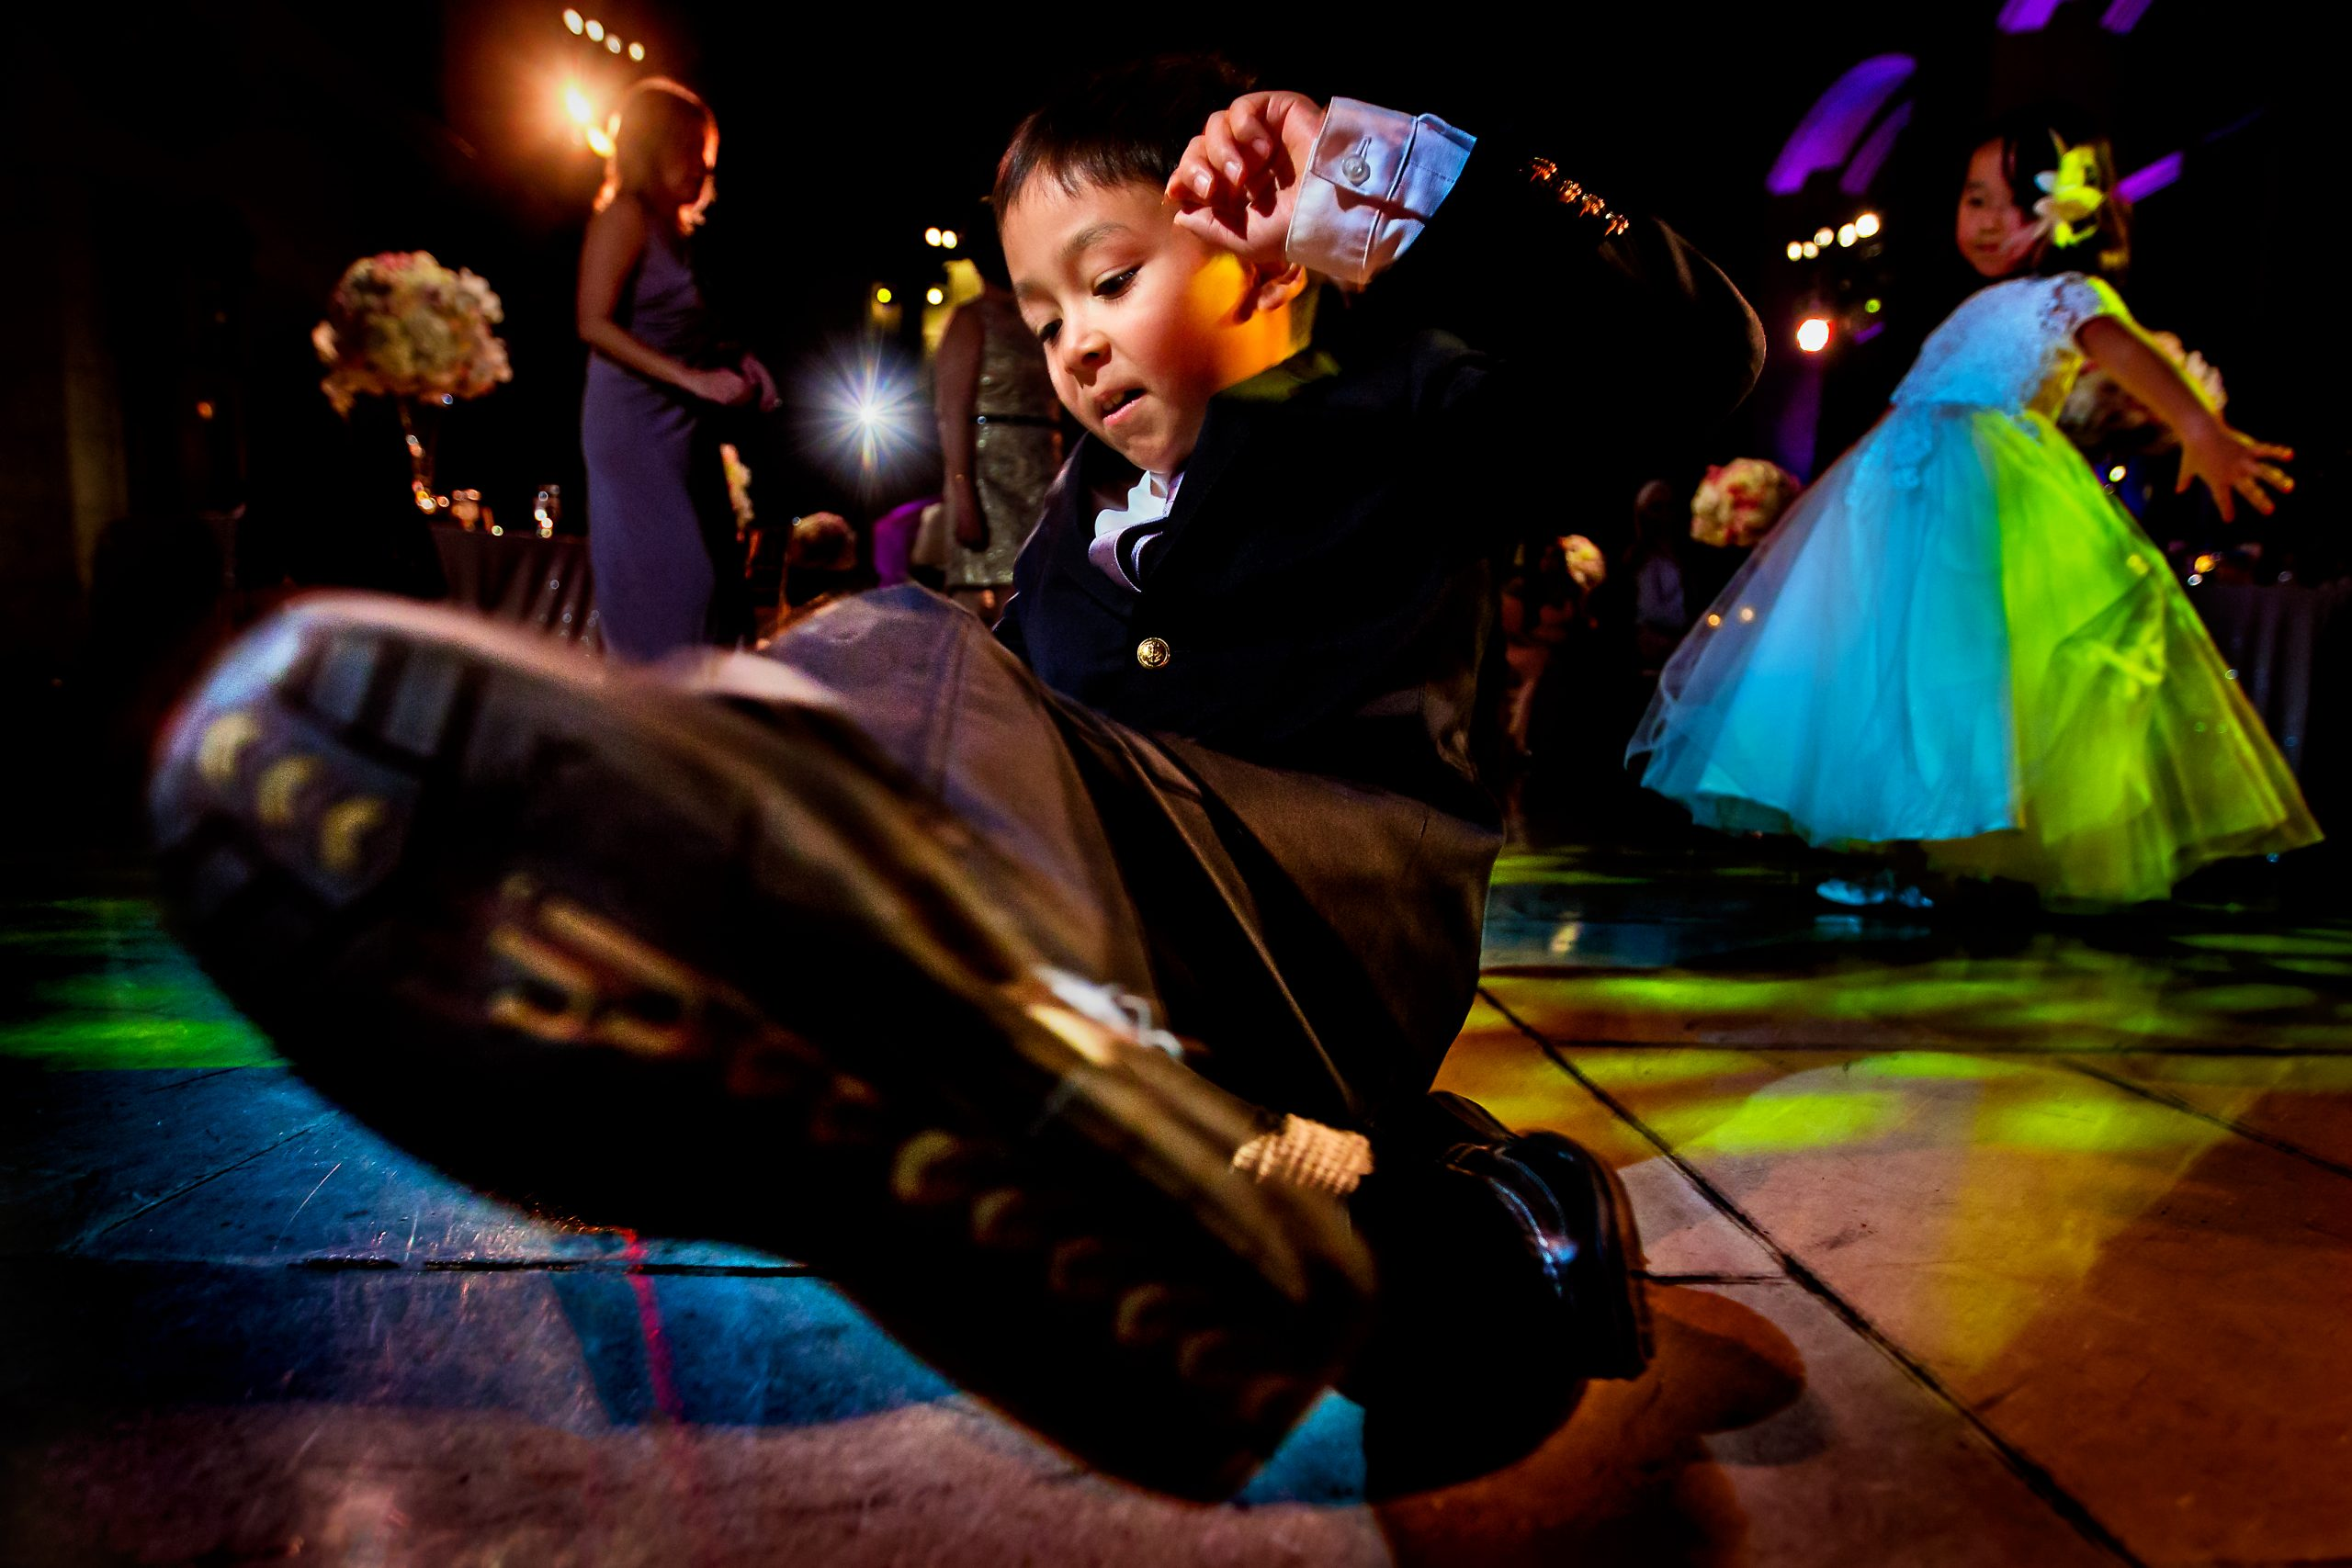 Young boy breakdancing on dance floor at wedding party